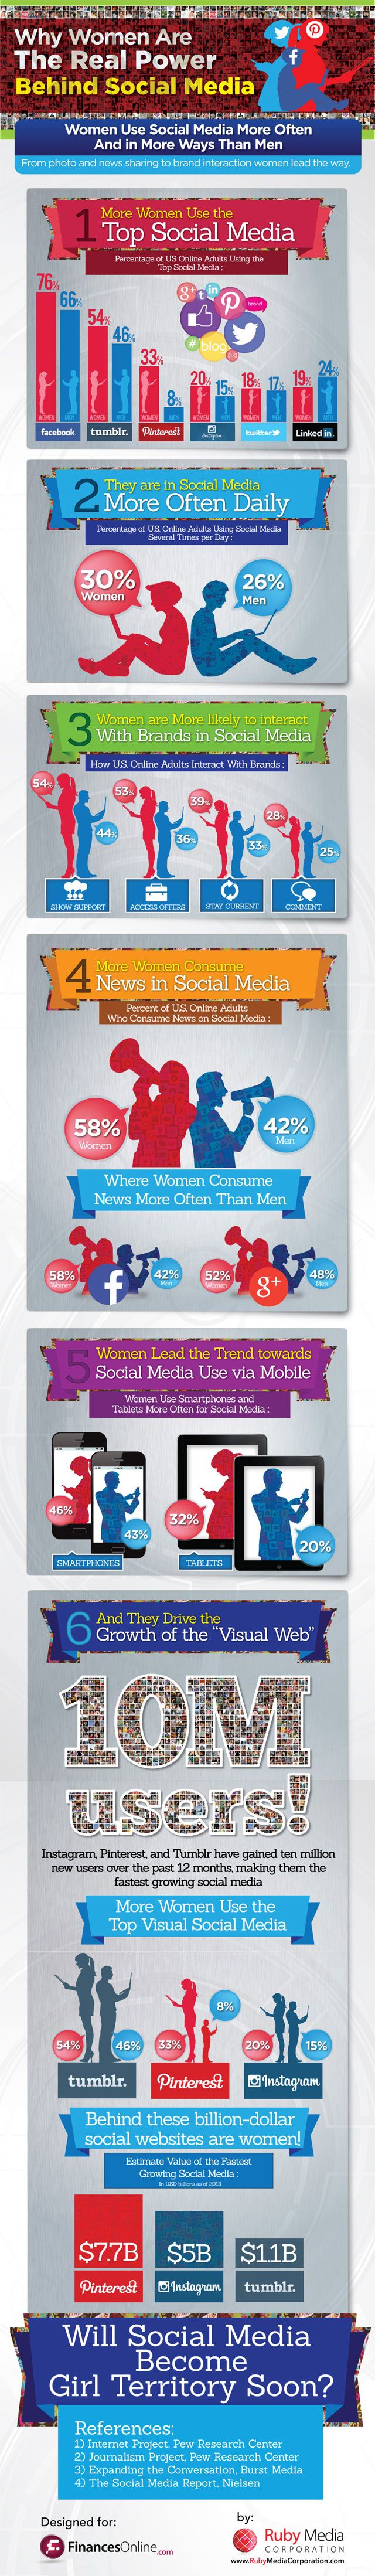 Why Women Are the REAL Power Behind #SocialMedia!